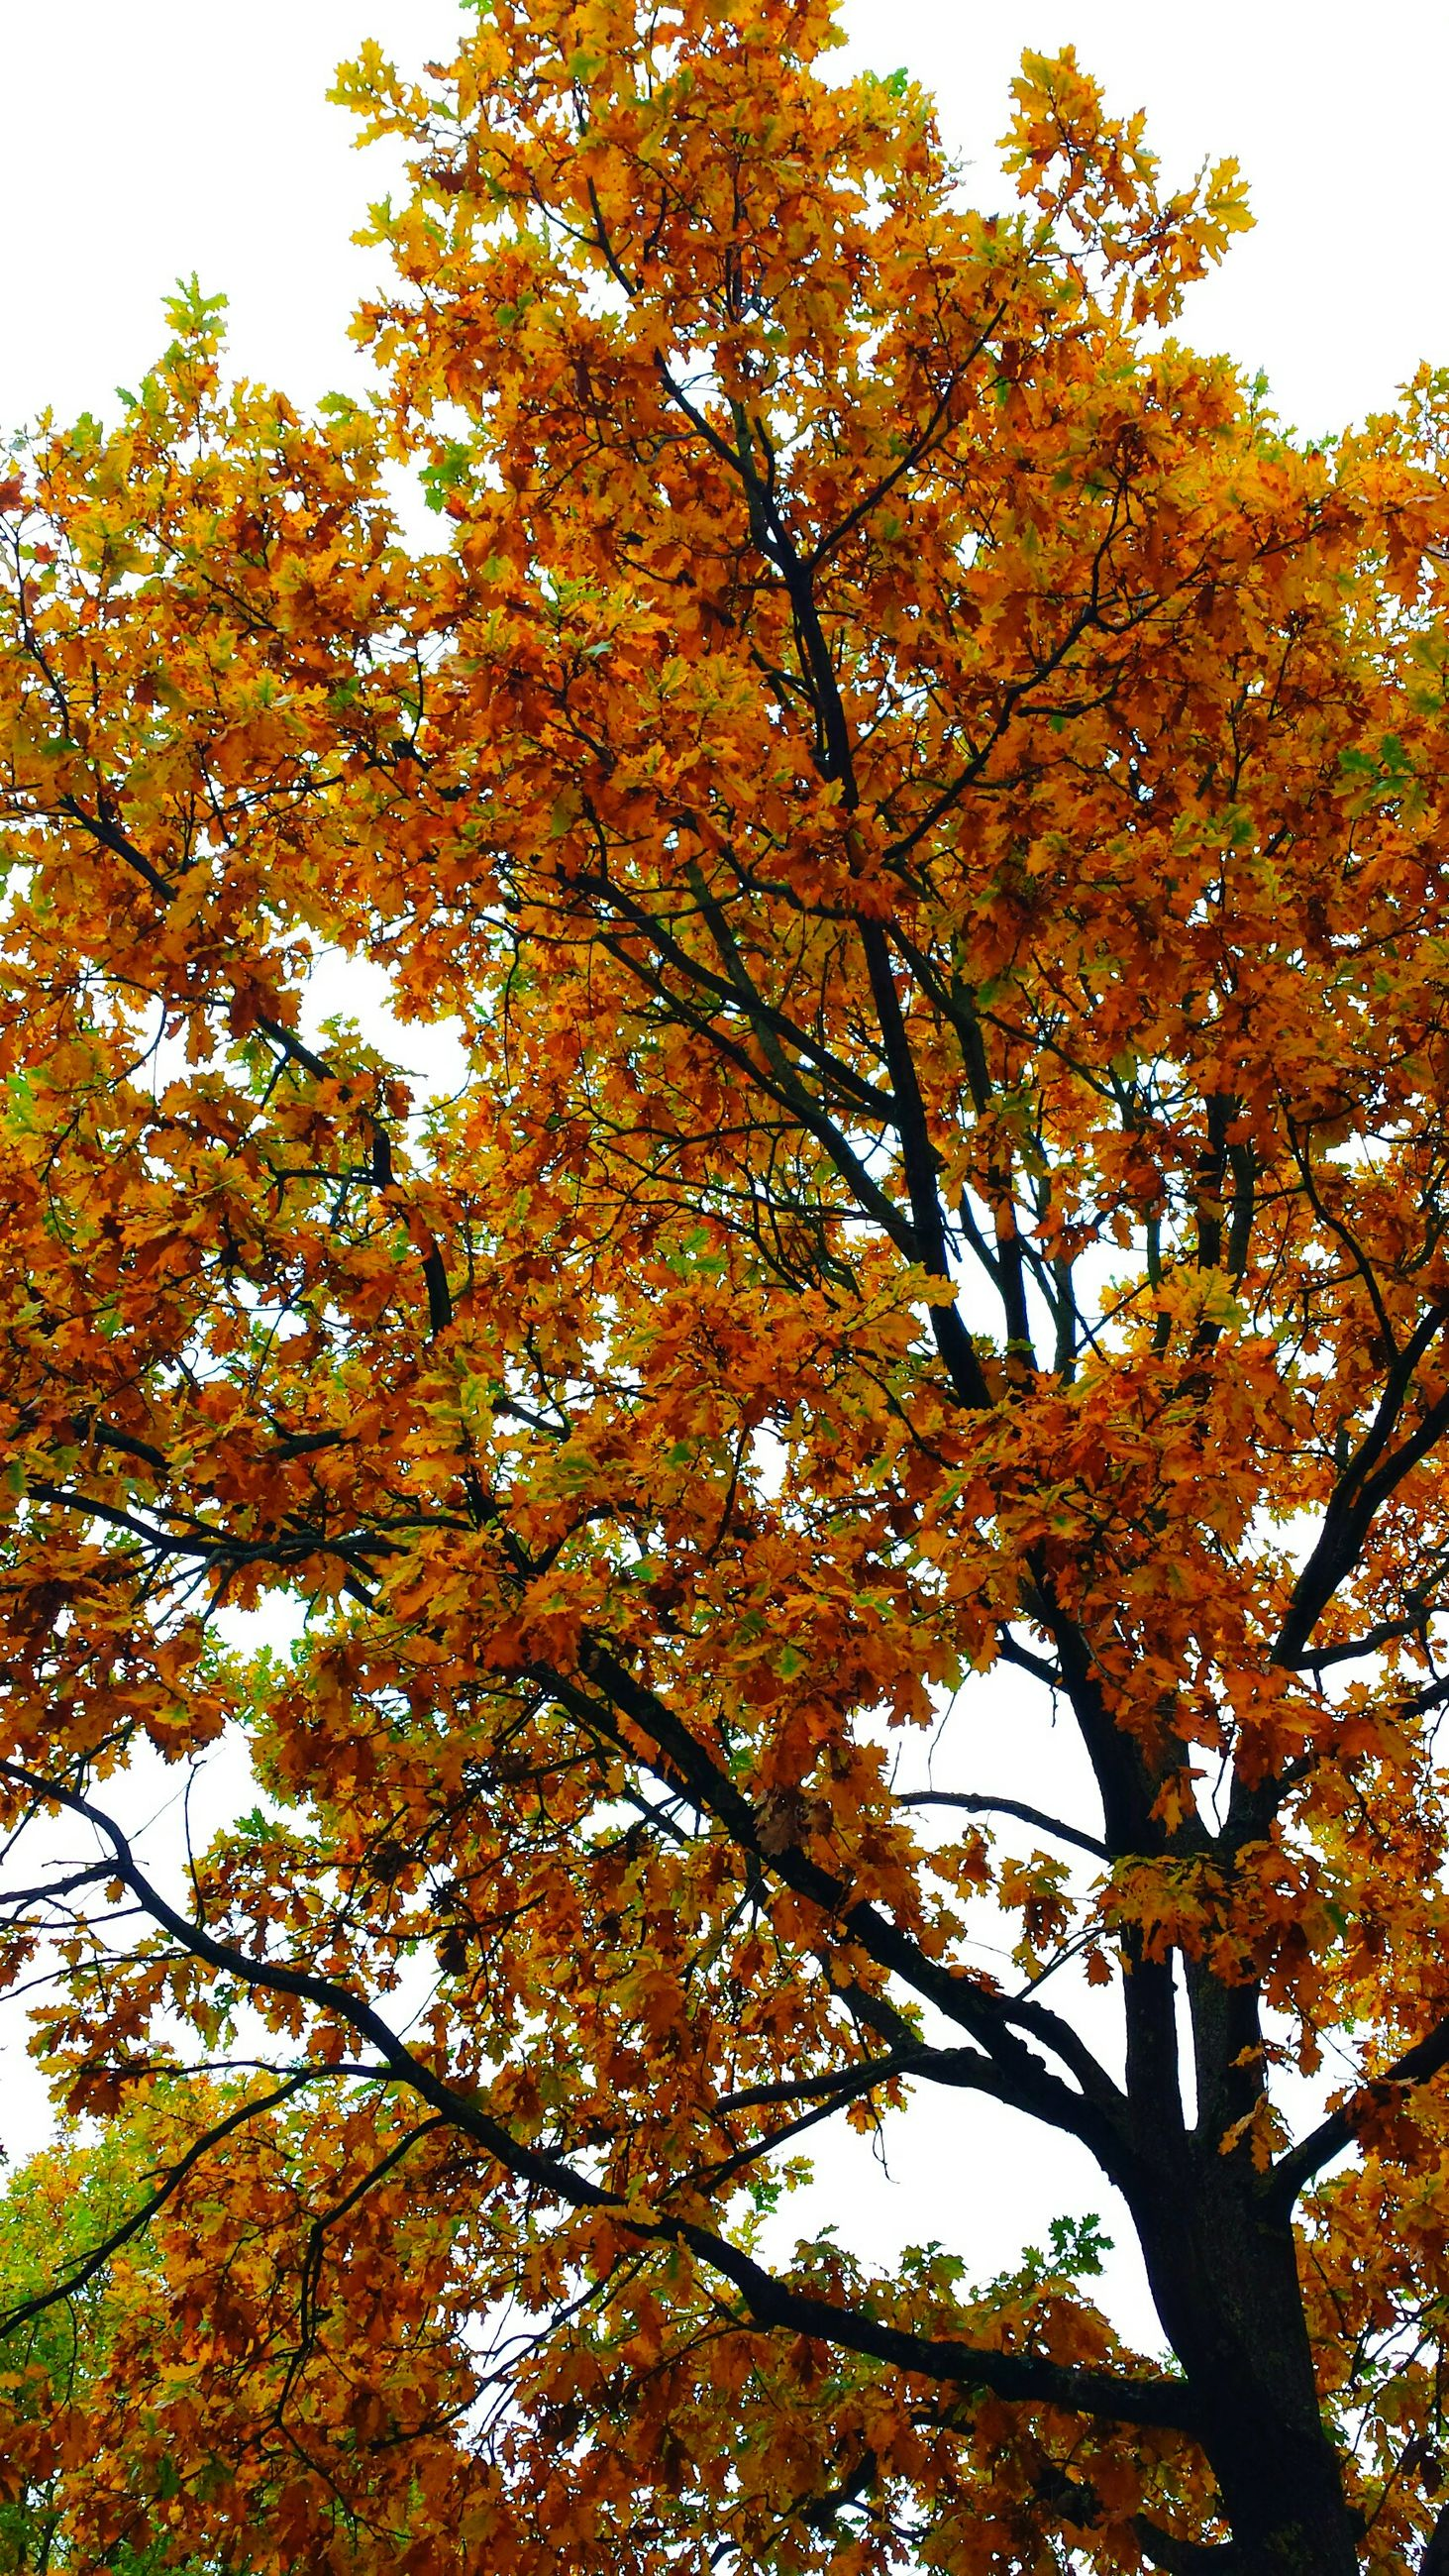 tree, low angle view, autumn, change, branch, growth, yellow, nature, season, beauty in nature, leaf, tranquility, sky, clear sky, day, orange color, lush foliage, outdoors, scenics, no people